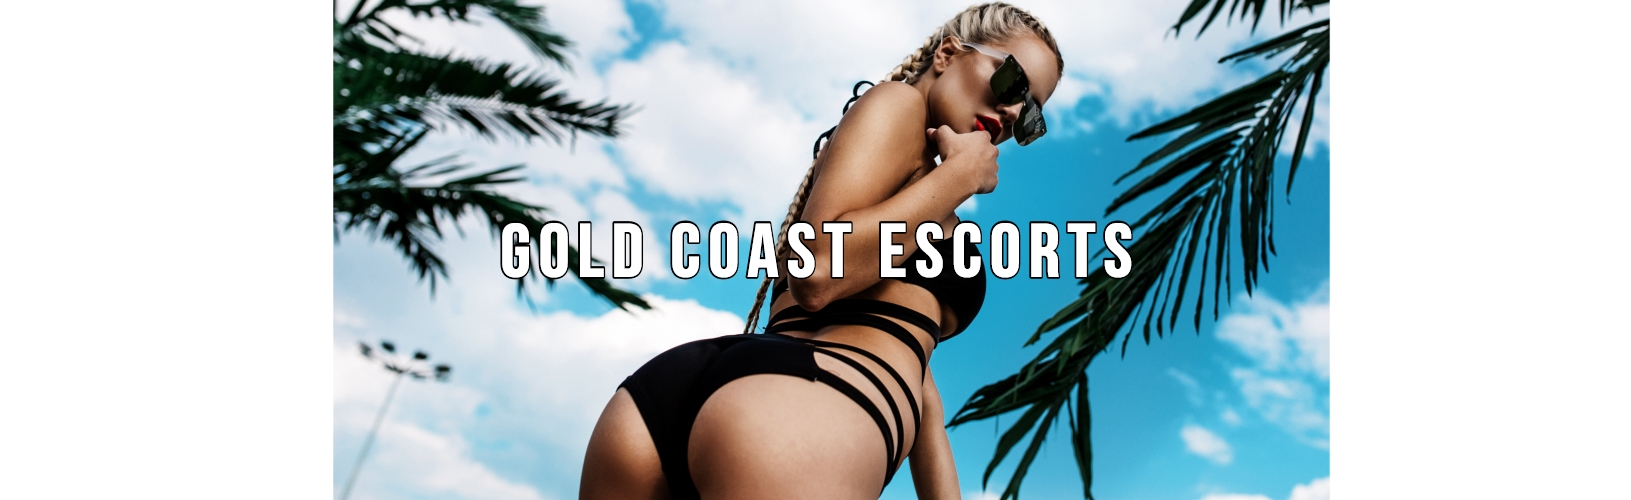 GOLD COAST PRIVATE ESCORTS | AVAILABLE ANGELS